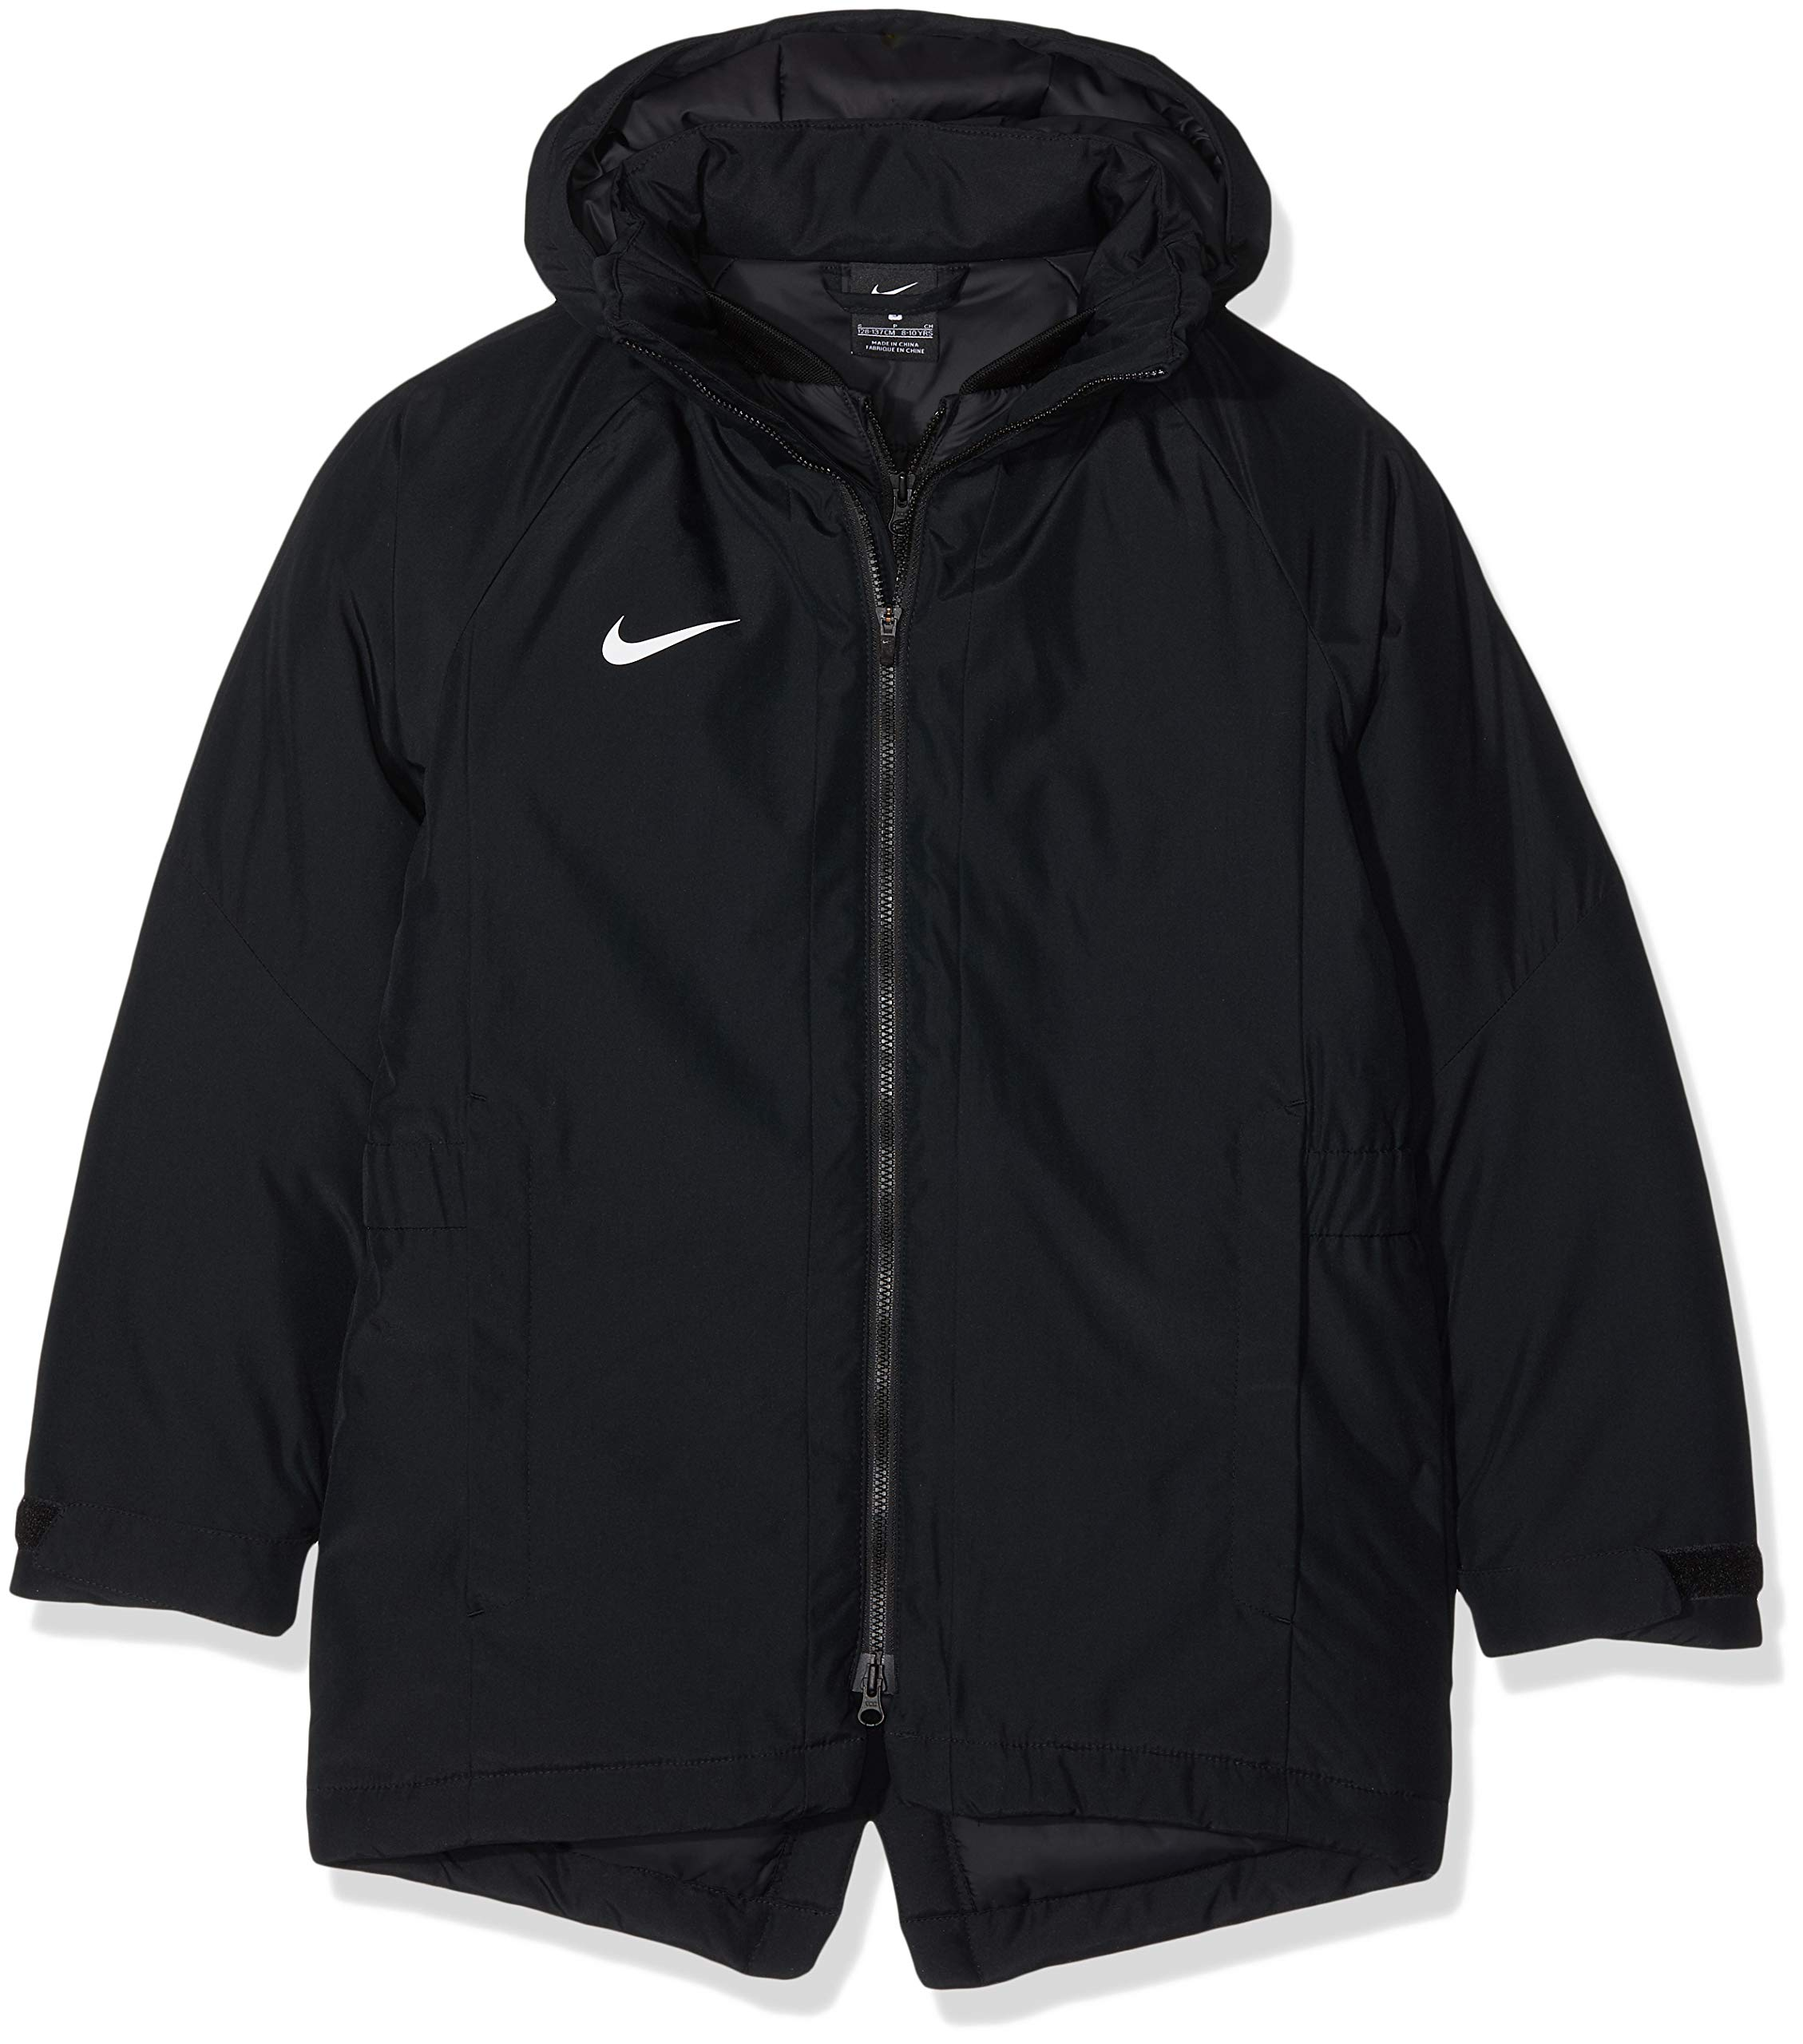 Nike Youth Dry Academy18 Football Winter Jacket (Youth) (Youth Small) Black by Nike